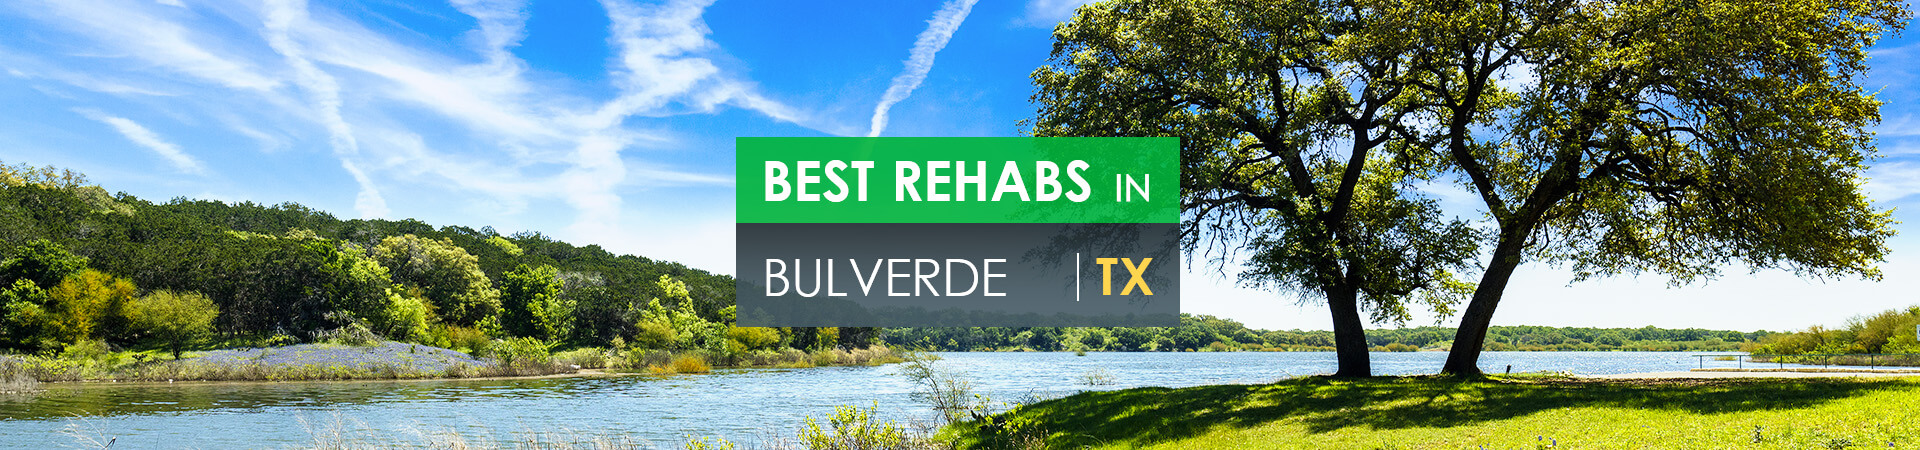 Best rehabs in Bulverde, TX